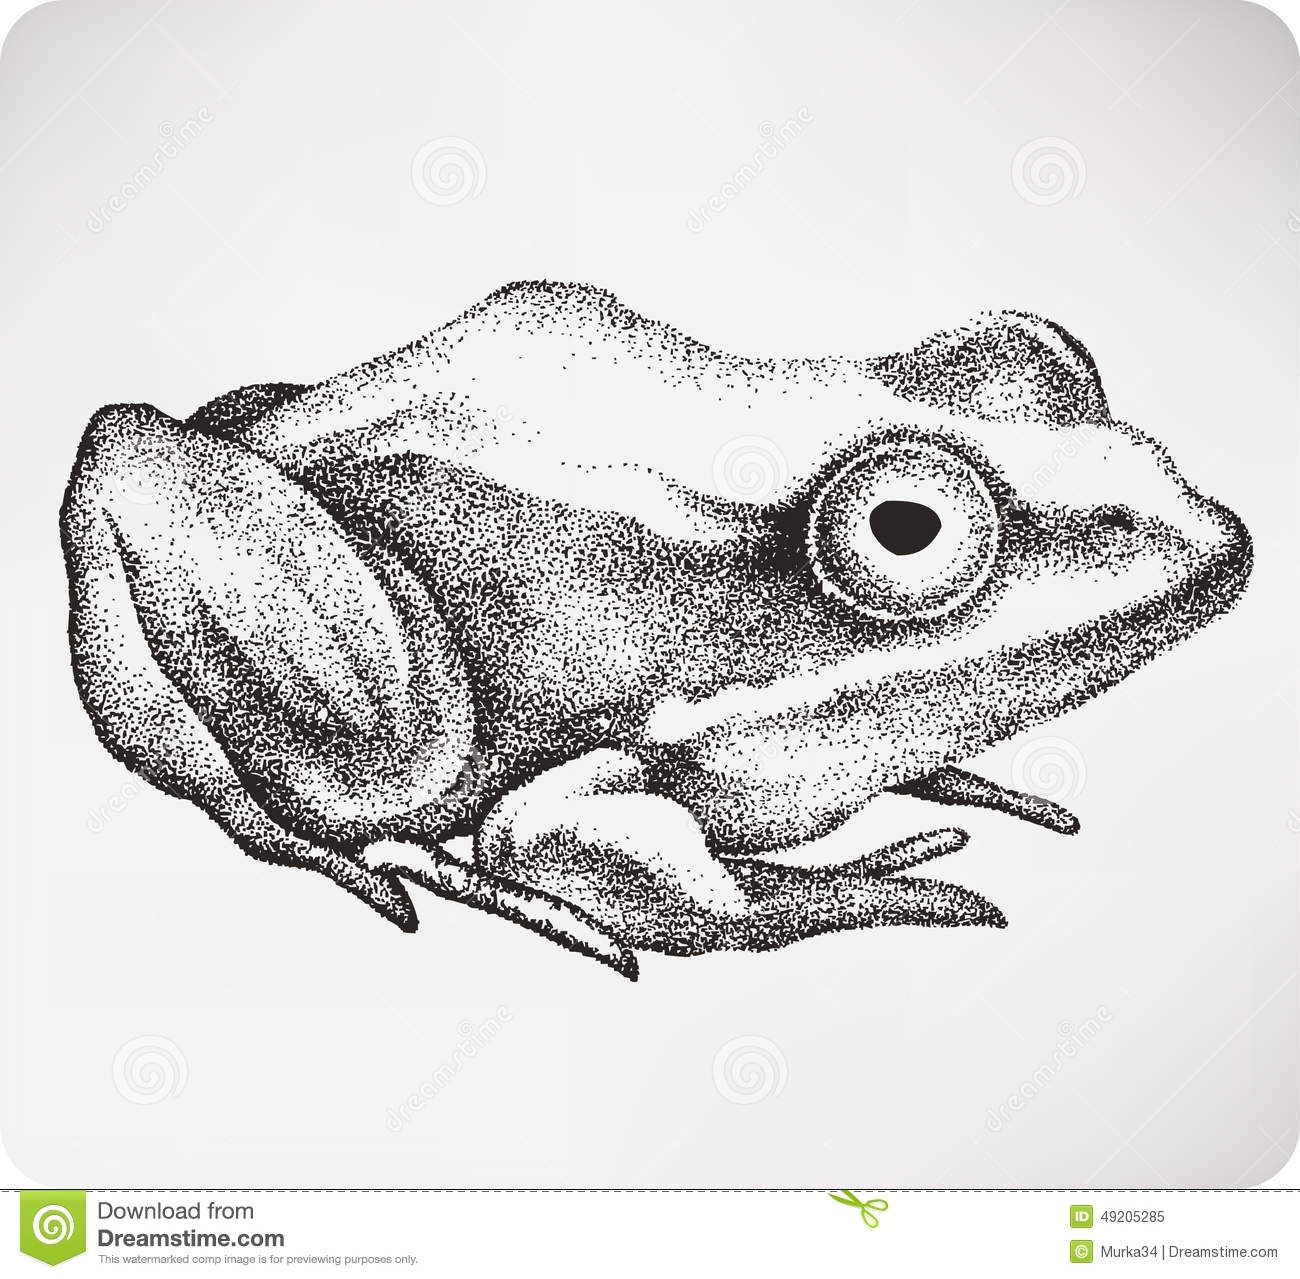 toad coloring pages - illustration stock crapaud animal main dessin illustration de vecteur image